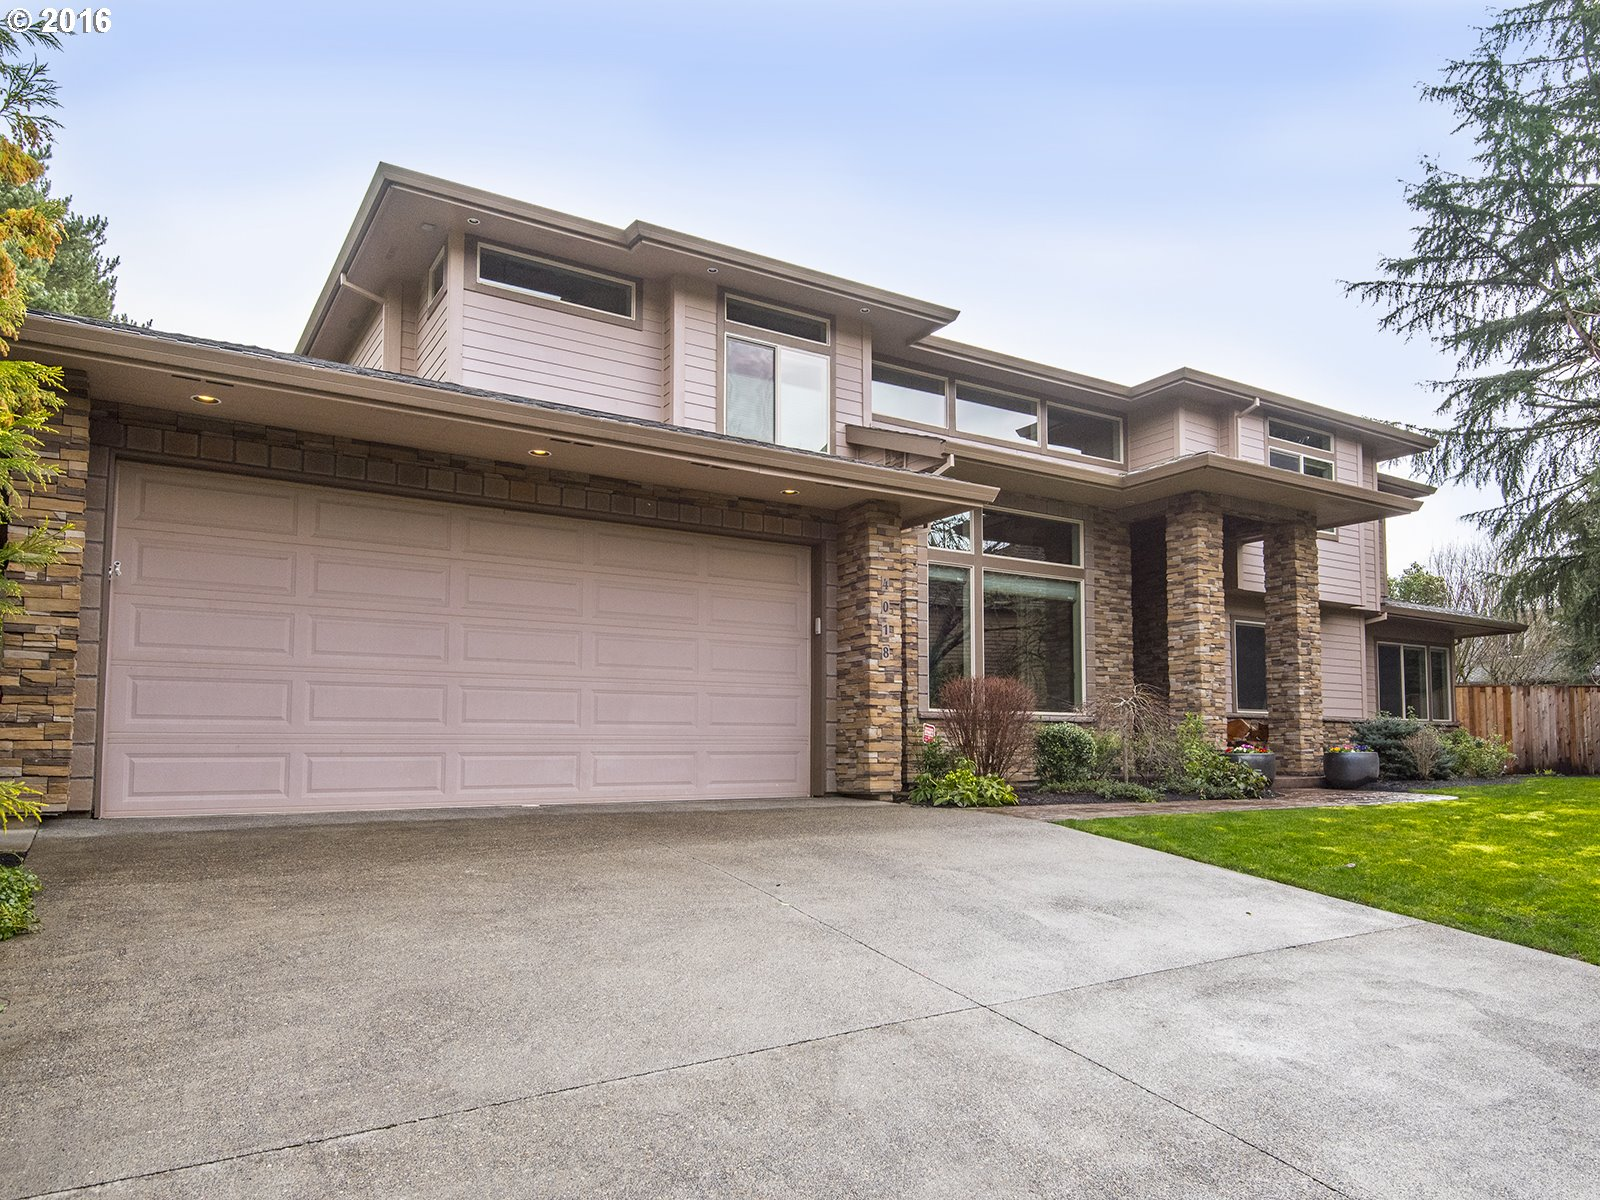 4018 Coho Ln, Lake Oswego, OR